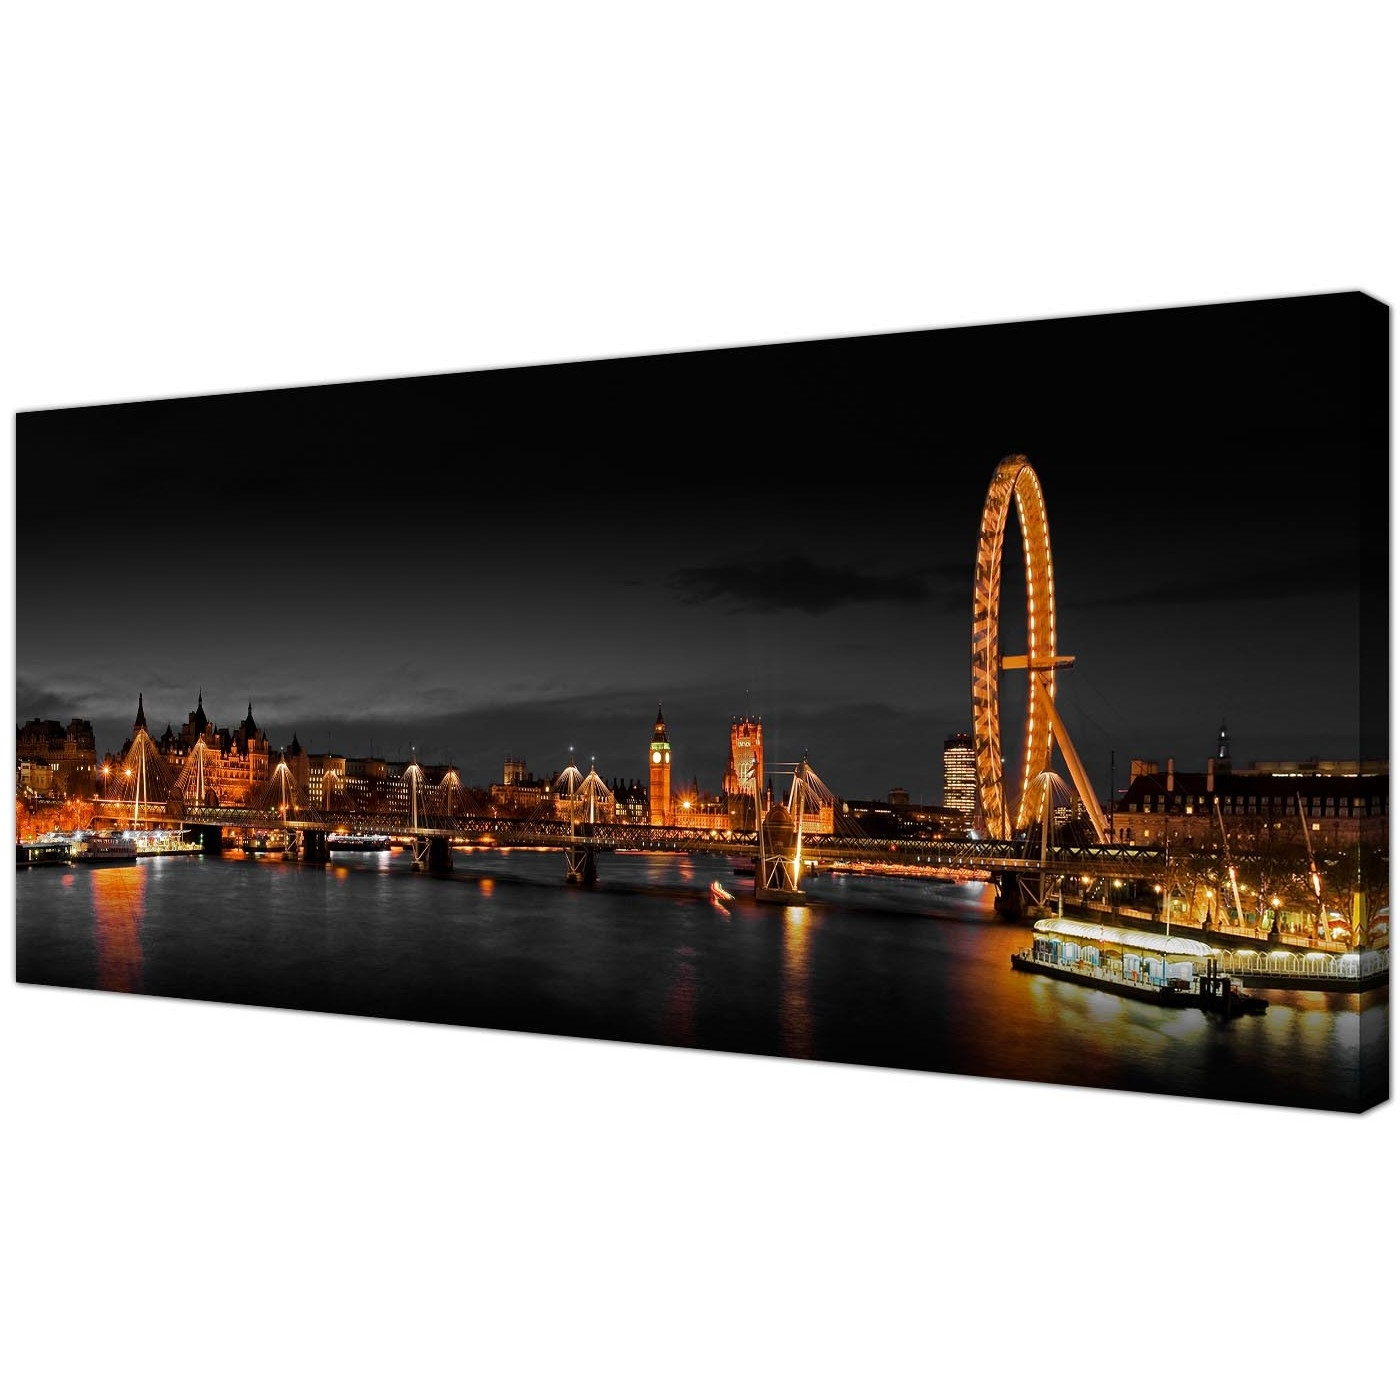 2017 Panoramic Canvas Wall Art Of London Eye At Night For Your Living Room For Panoramic Wall Art (View 1 of 15)